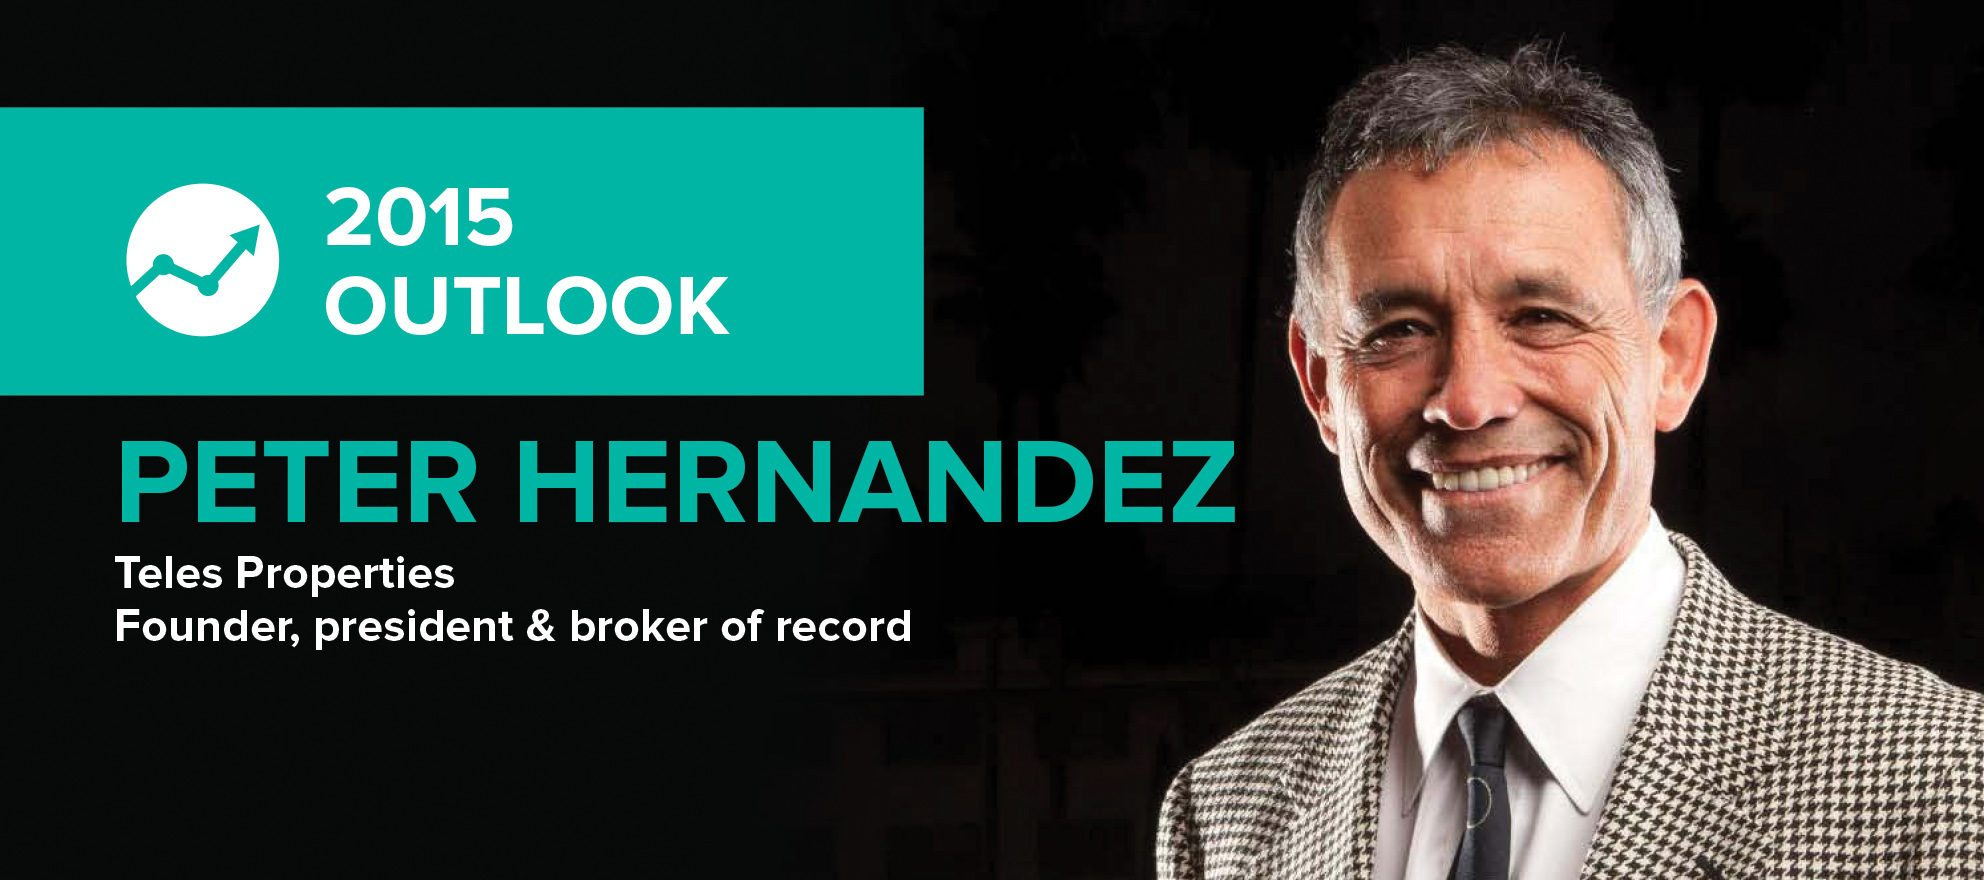 Peter Hernandez: 'There will be more business for everyone in 2015'